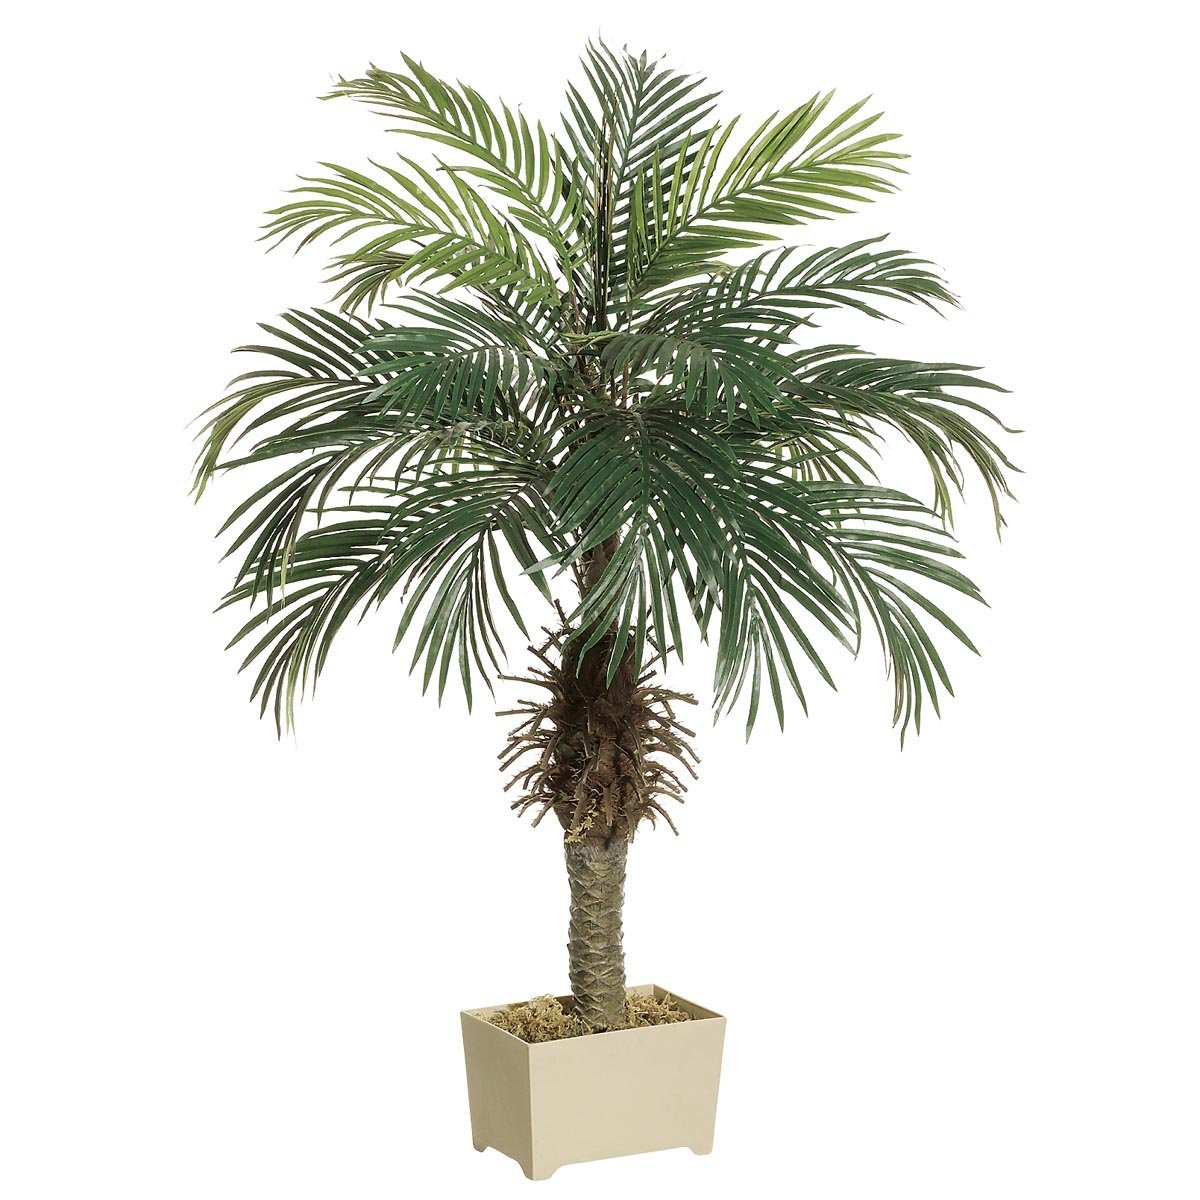 4' Phoenix Palm Tree in Rectangular Plastic Pot (Pack of 2)